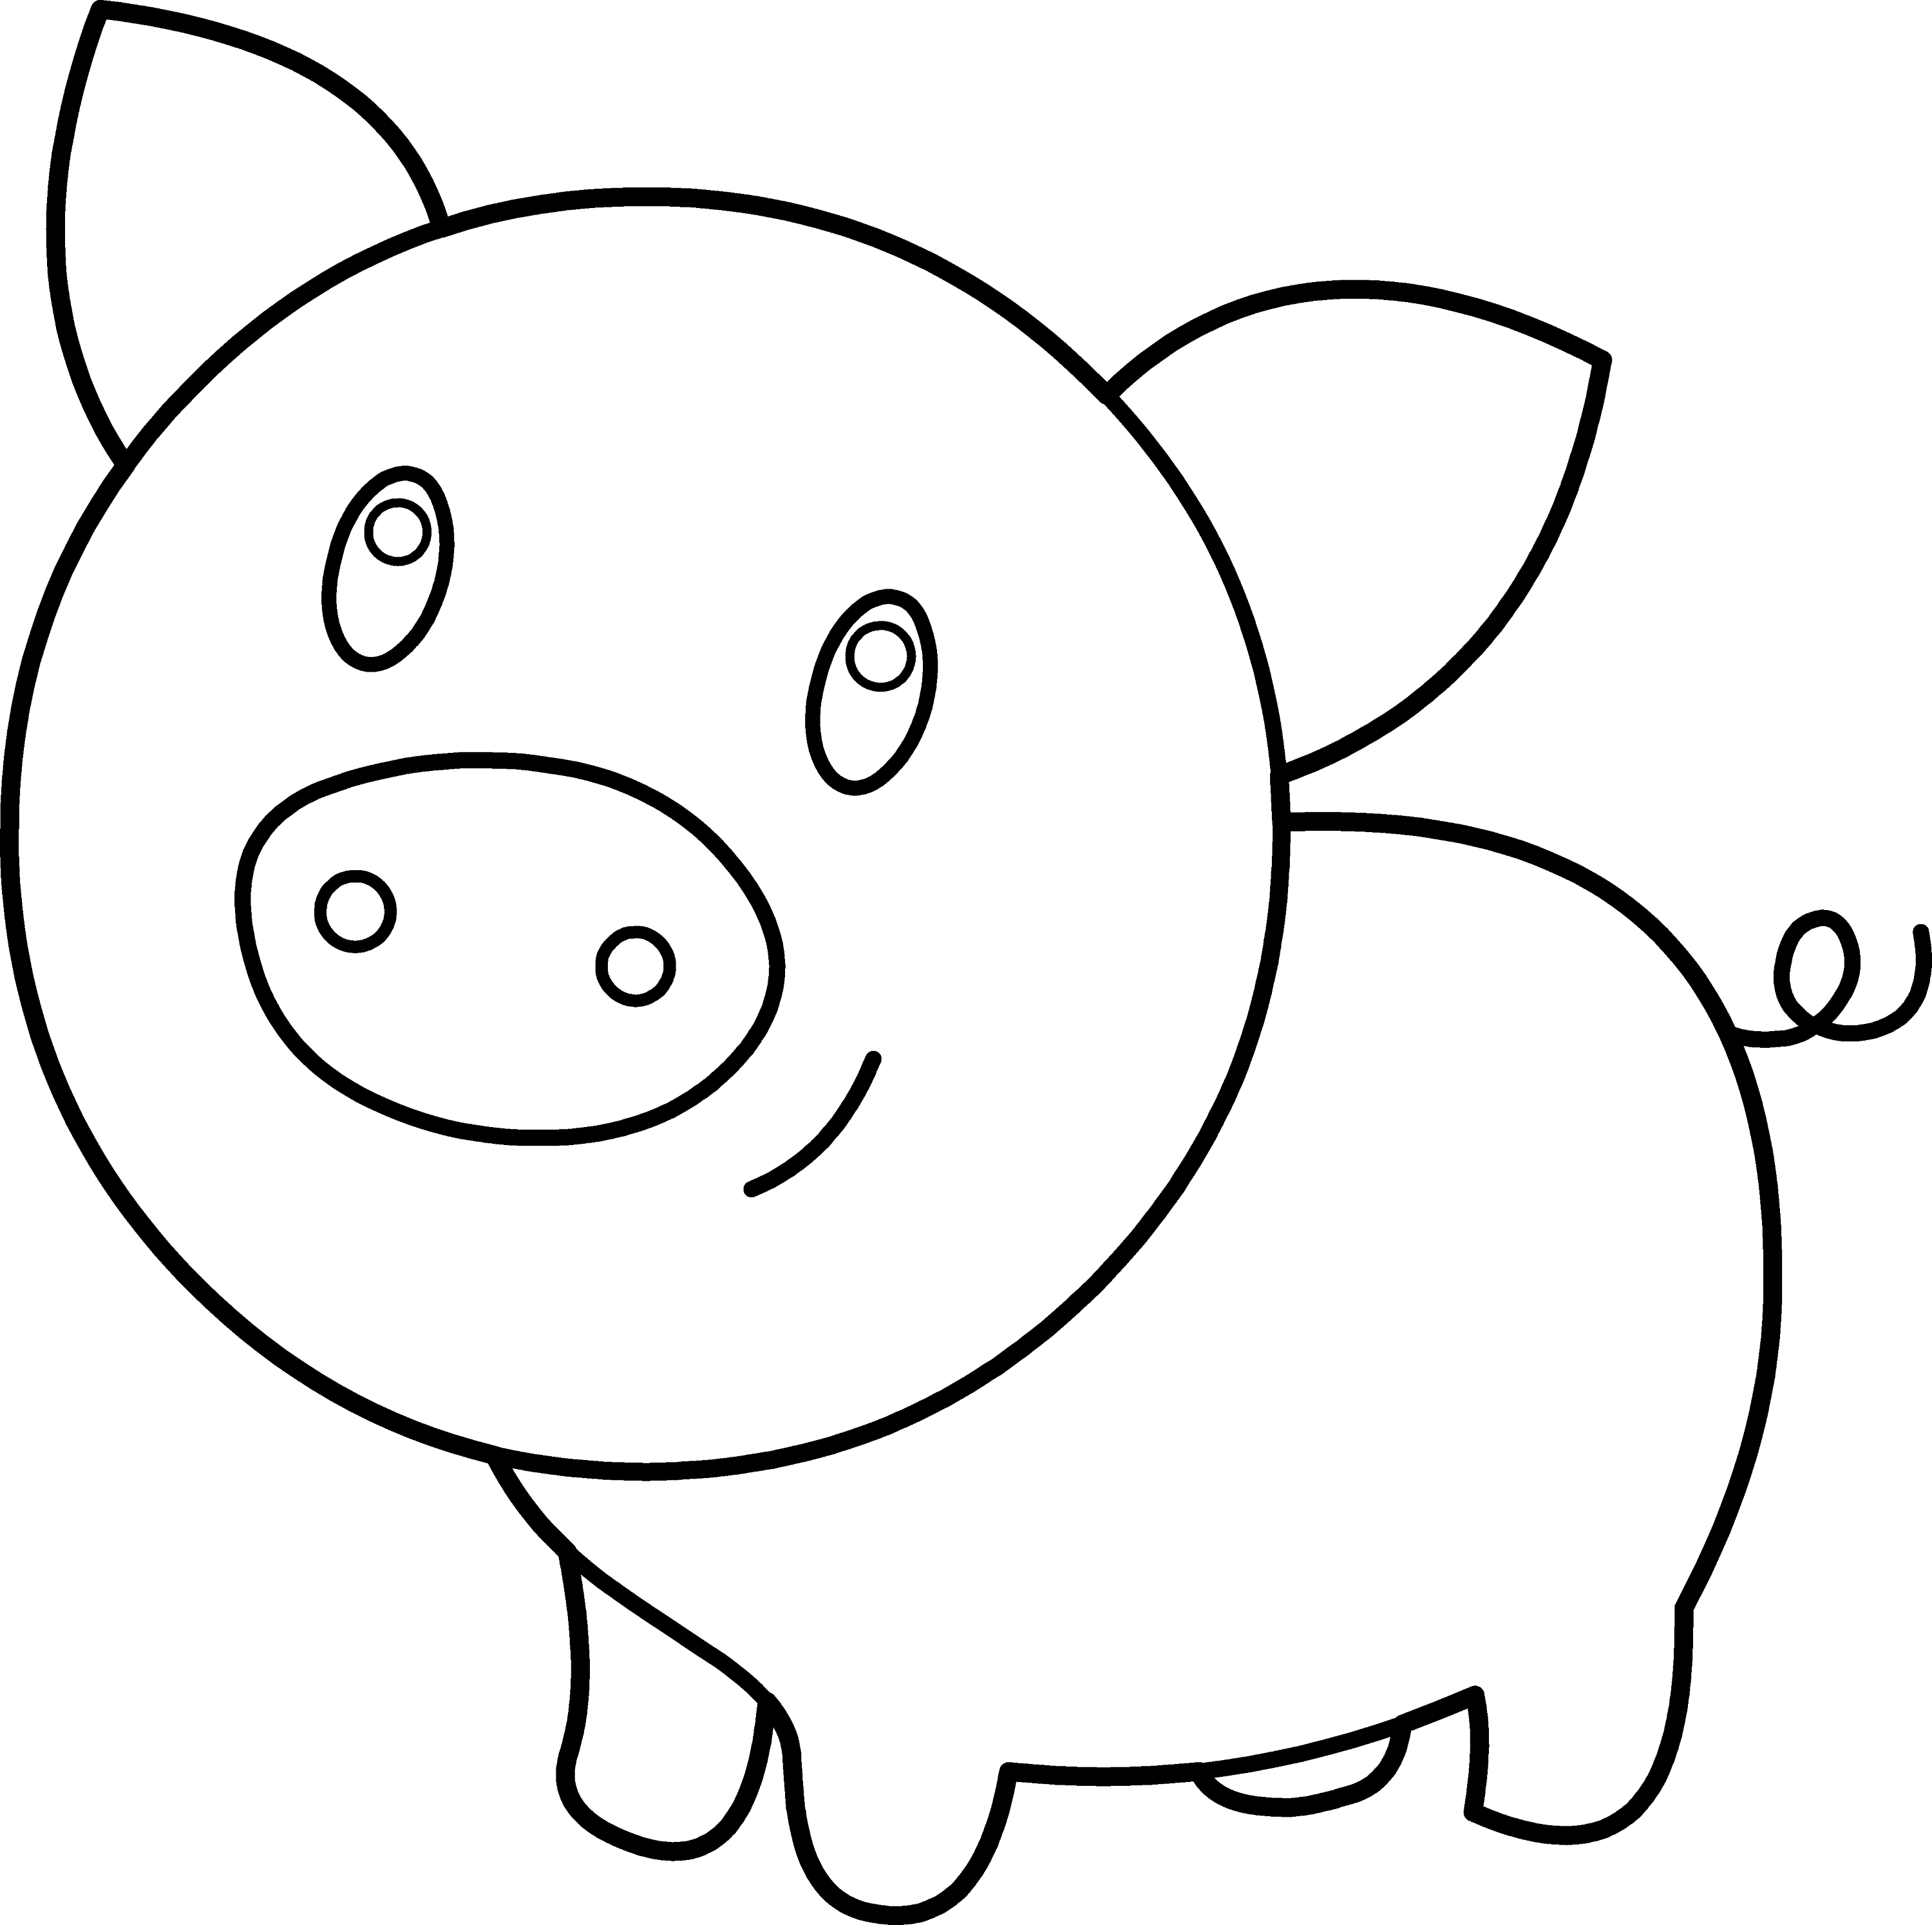 coloring page of pig free easy to print pig coloring pages tulamama of pig page coloring